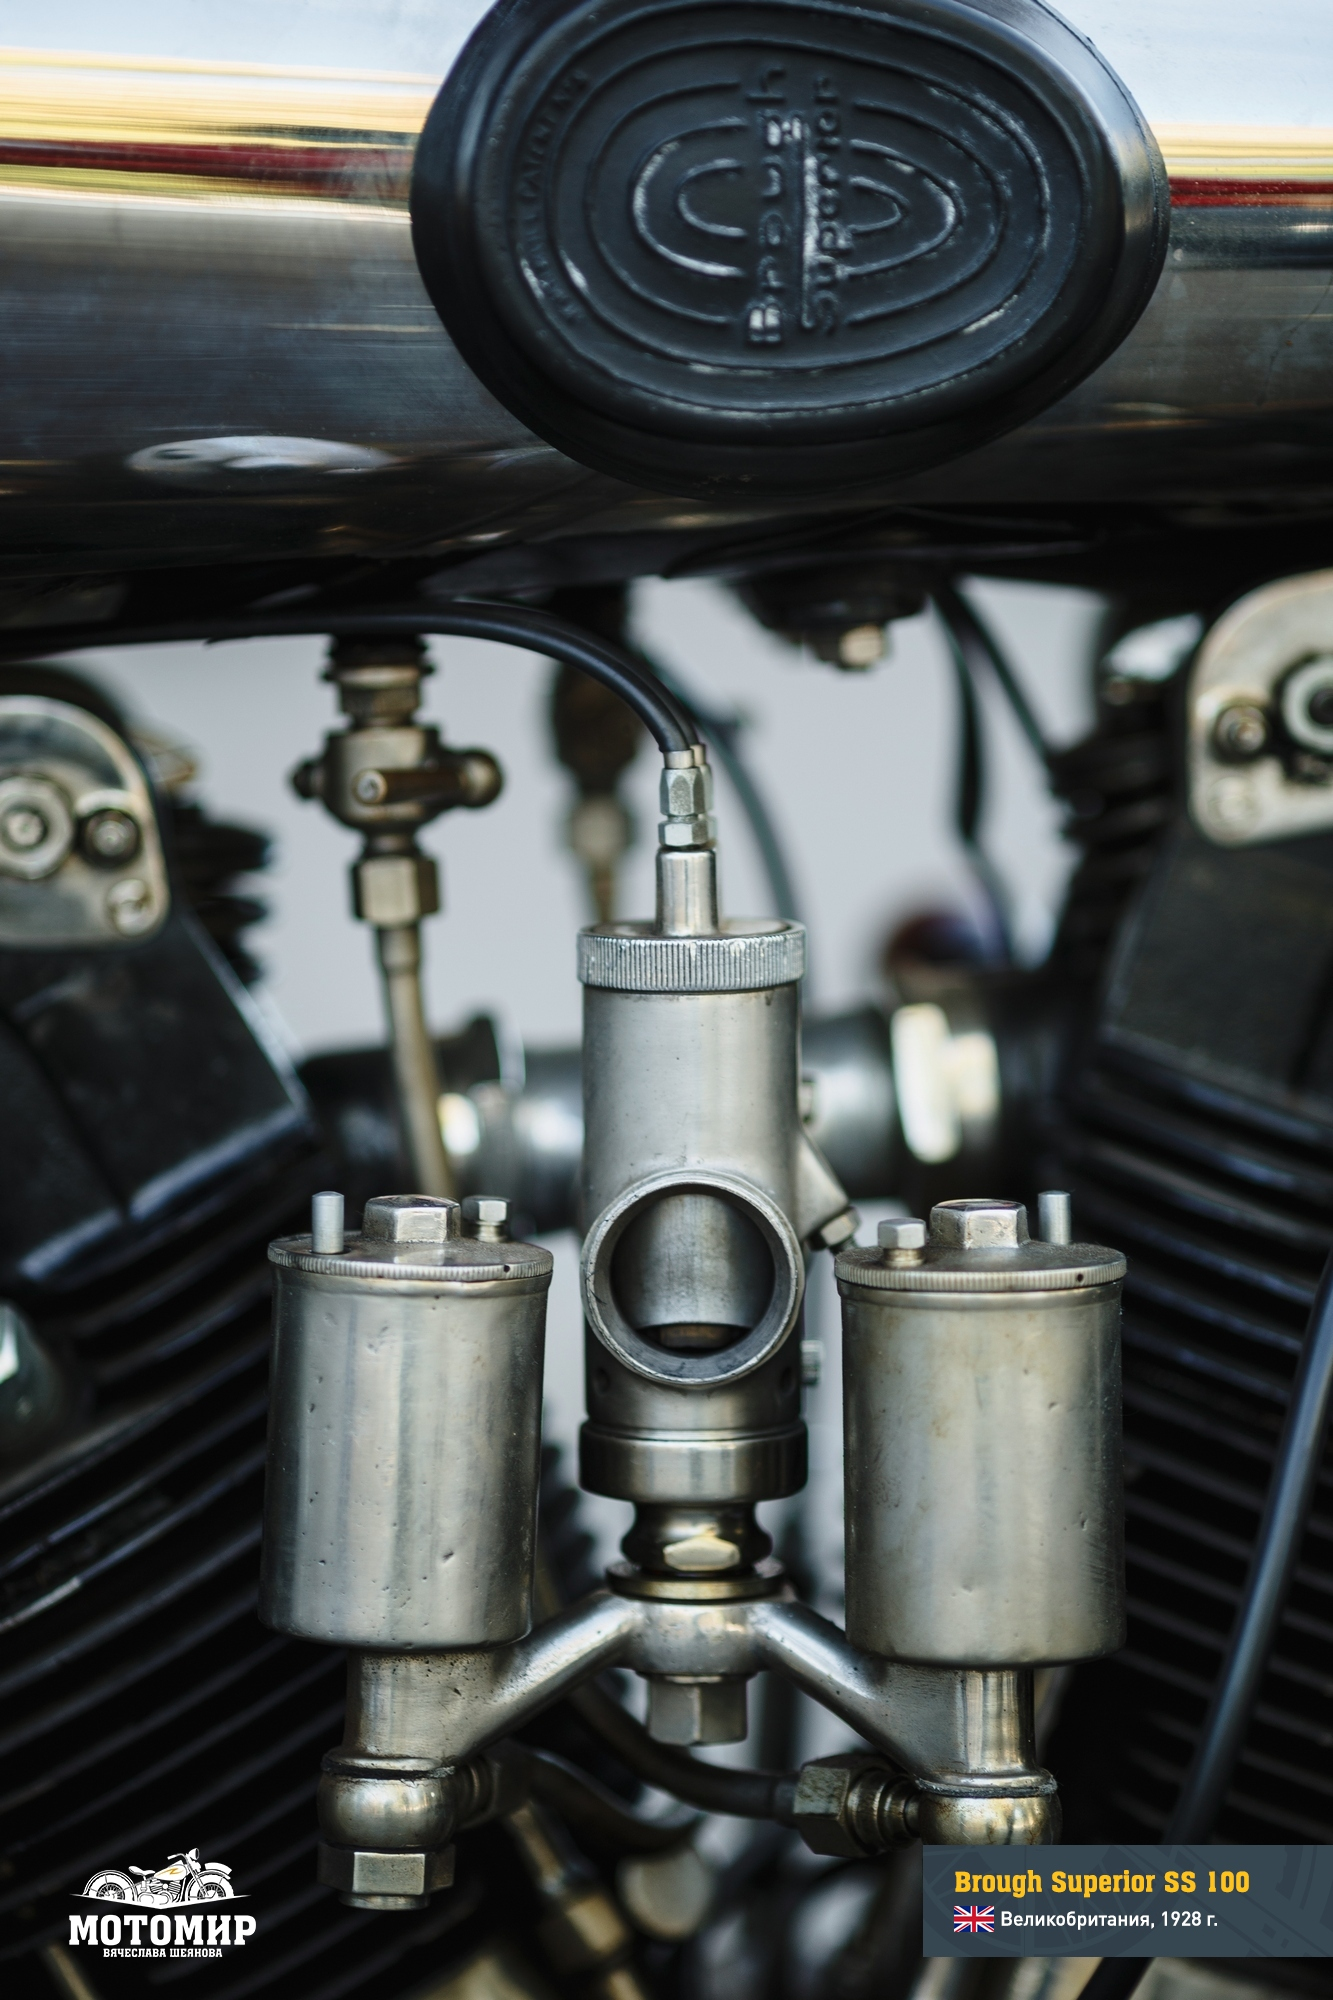 brough-superior-ss100-web-09